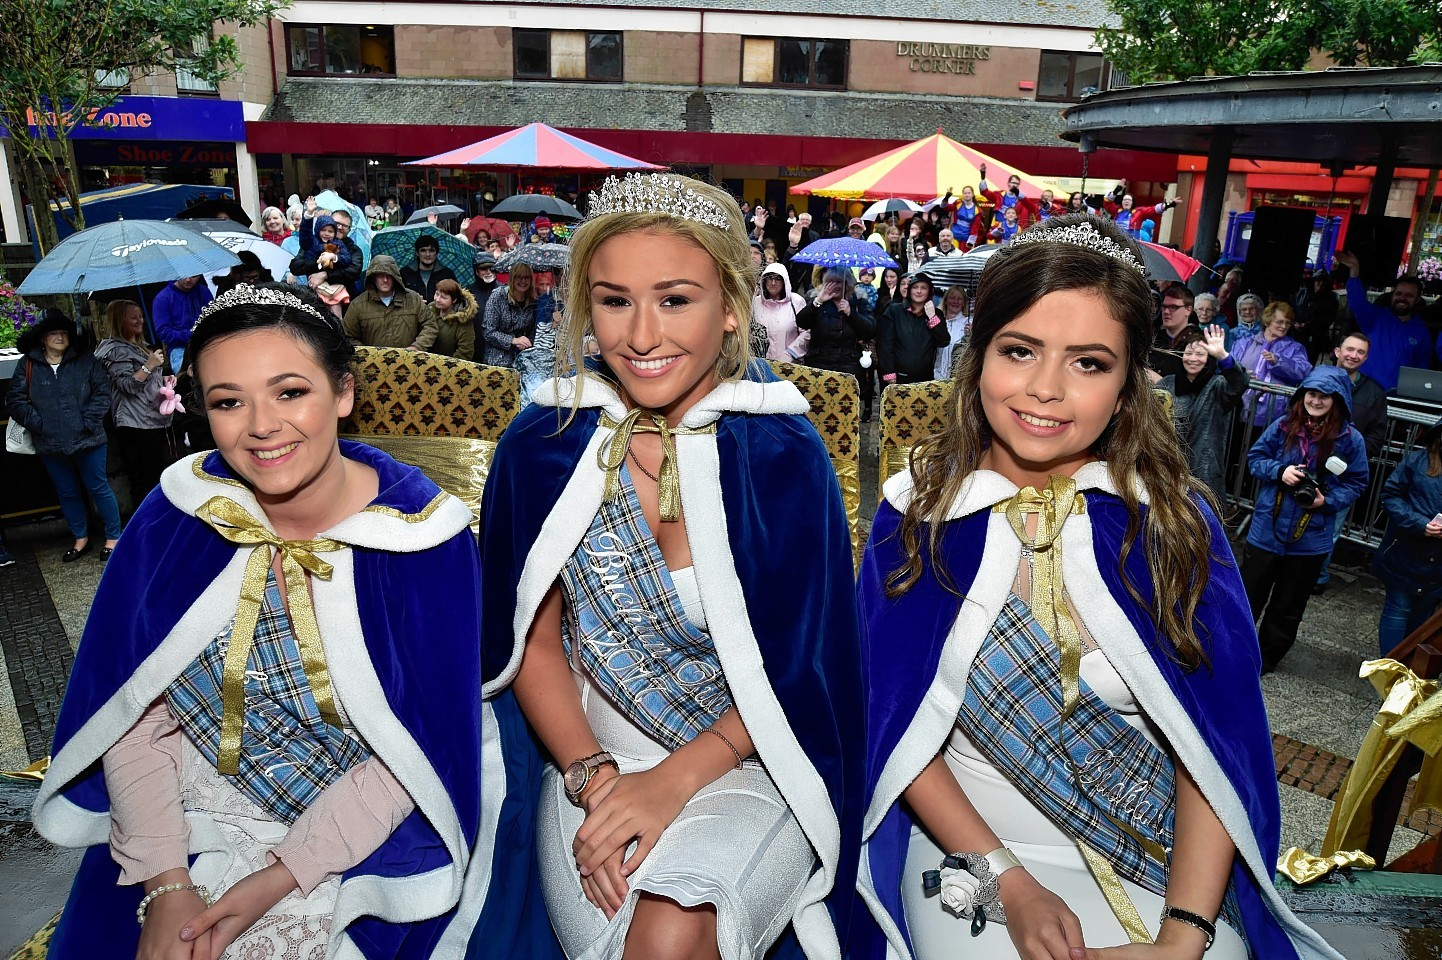 PETERHEAD SCOTTISH WEEK BUCHAN QUEEN BONNIE-LEIGH WILSON (CENTRE) WITH PRINCESSES KARLA INNES (L) AND PATRICIA STRACHAN AT THE CROWING CEREMONY IN DRUMMERS CORNER